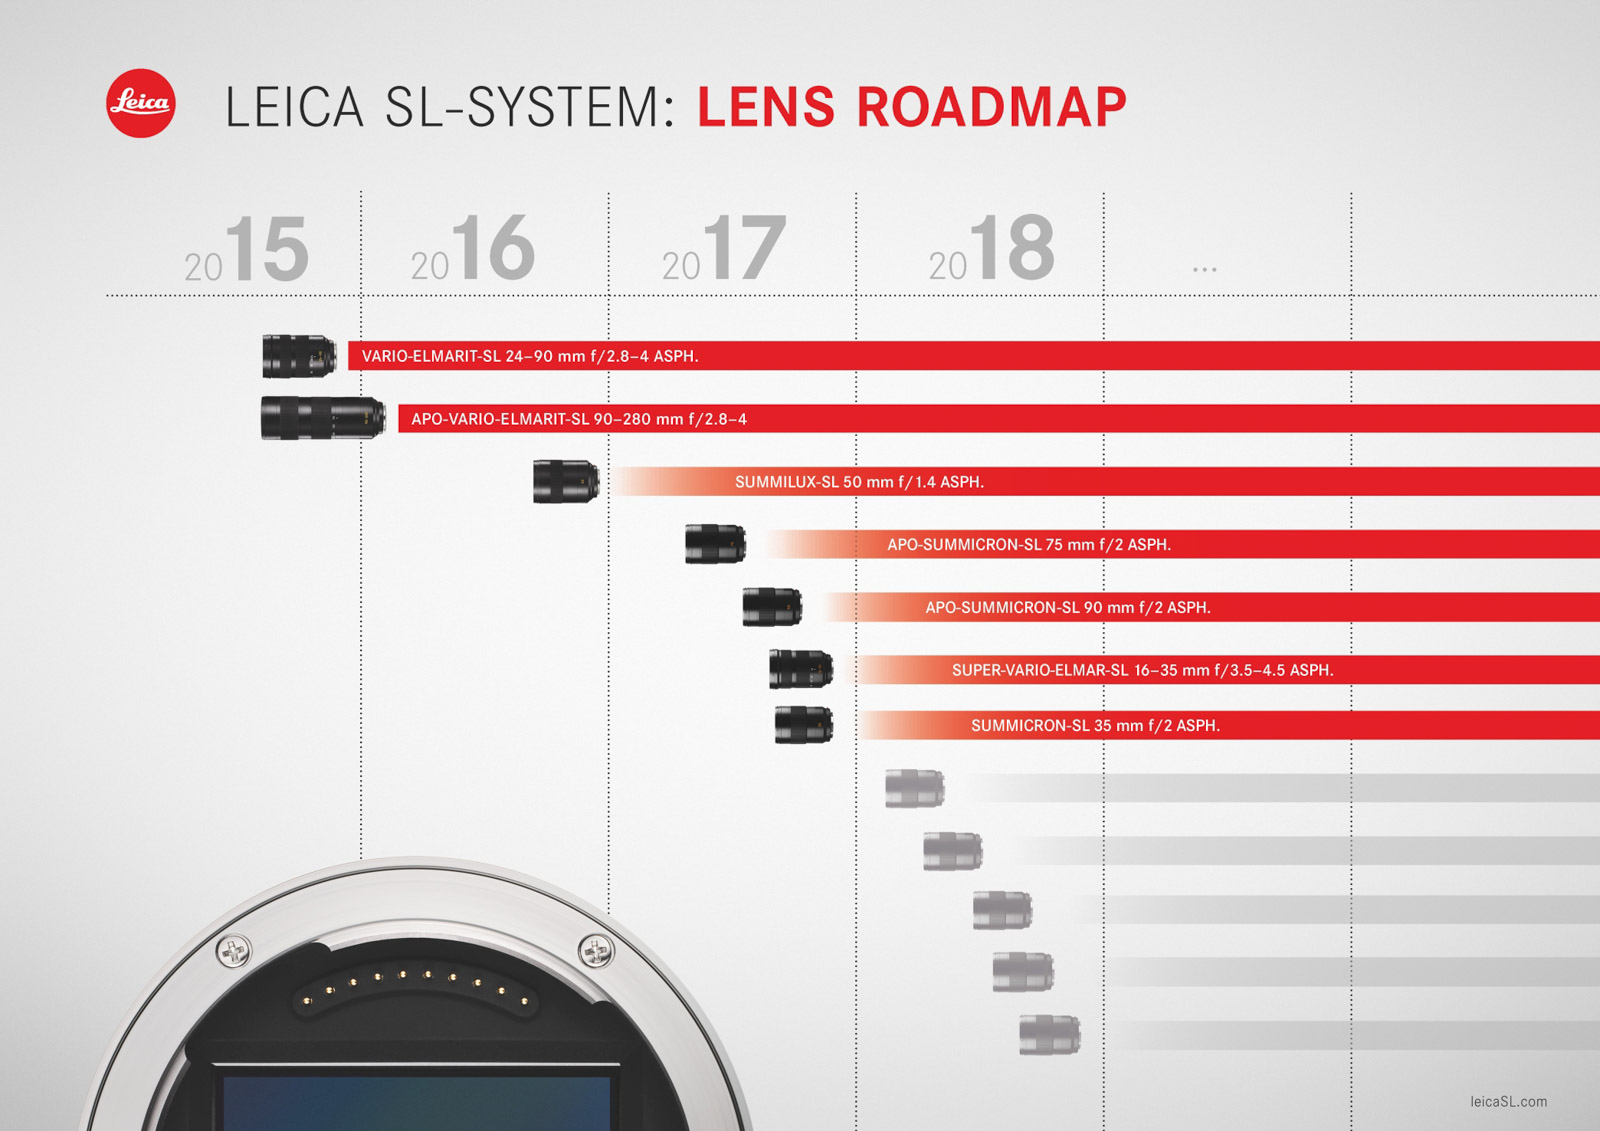 Leica APO-Summicron-SL 50mm f/2 coming in 2018